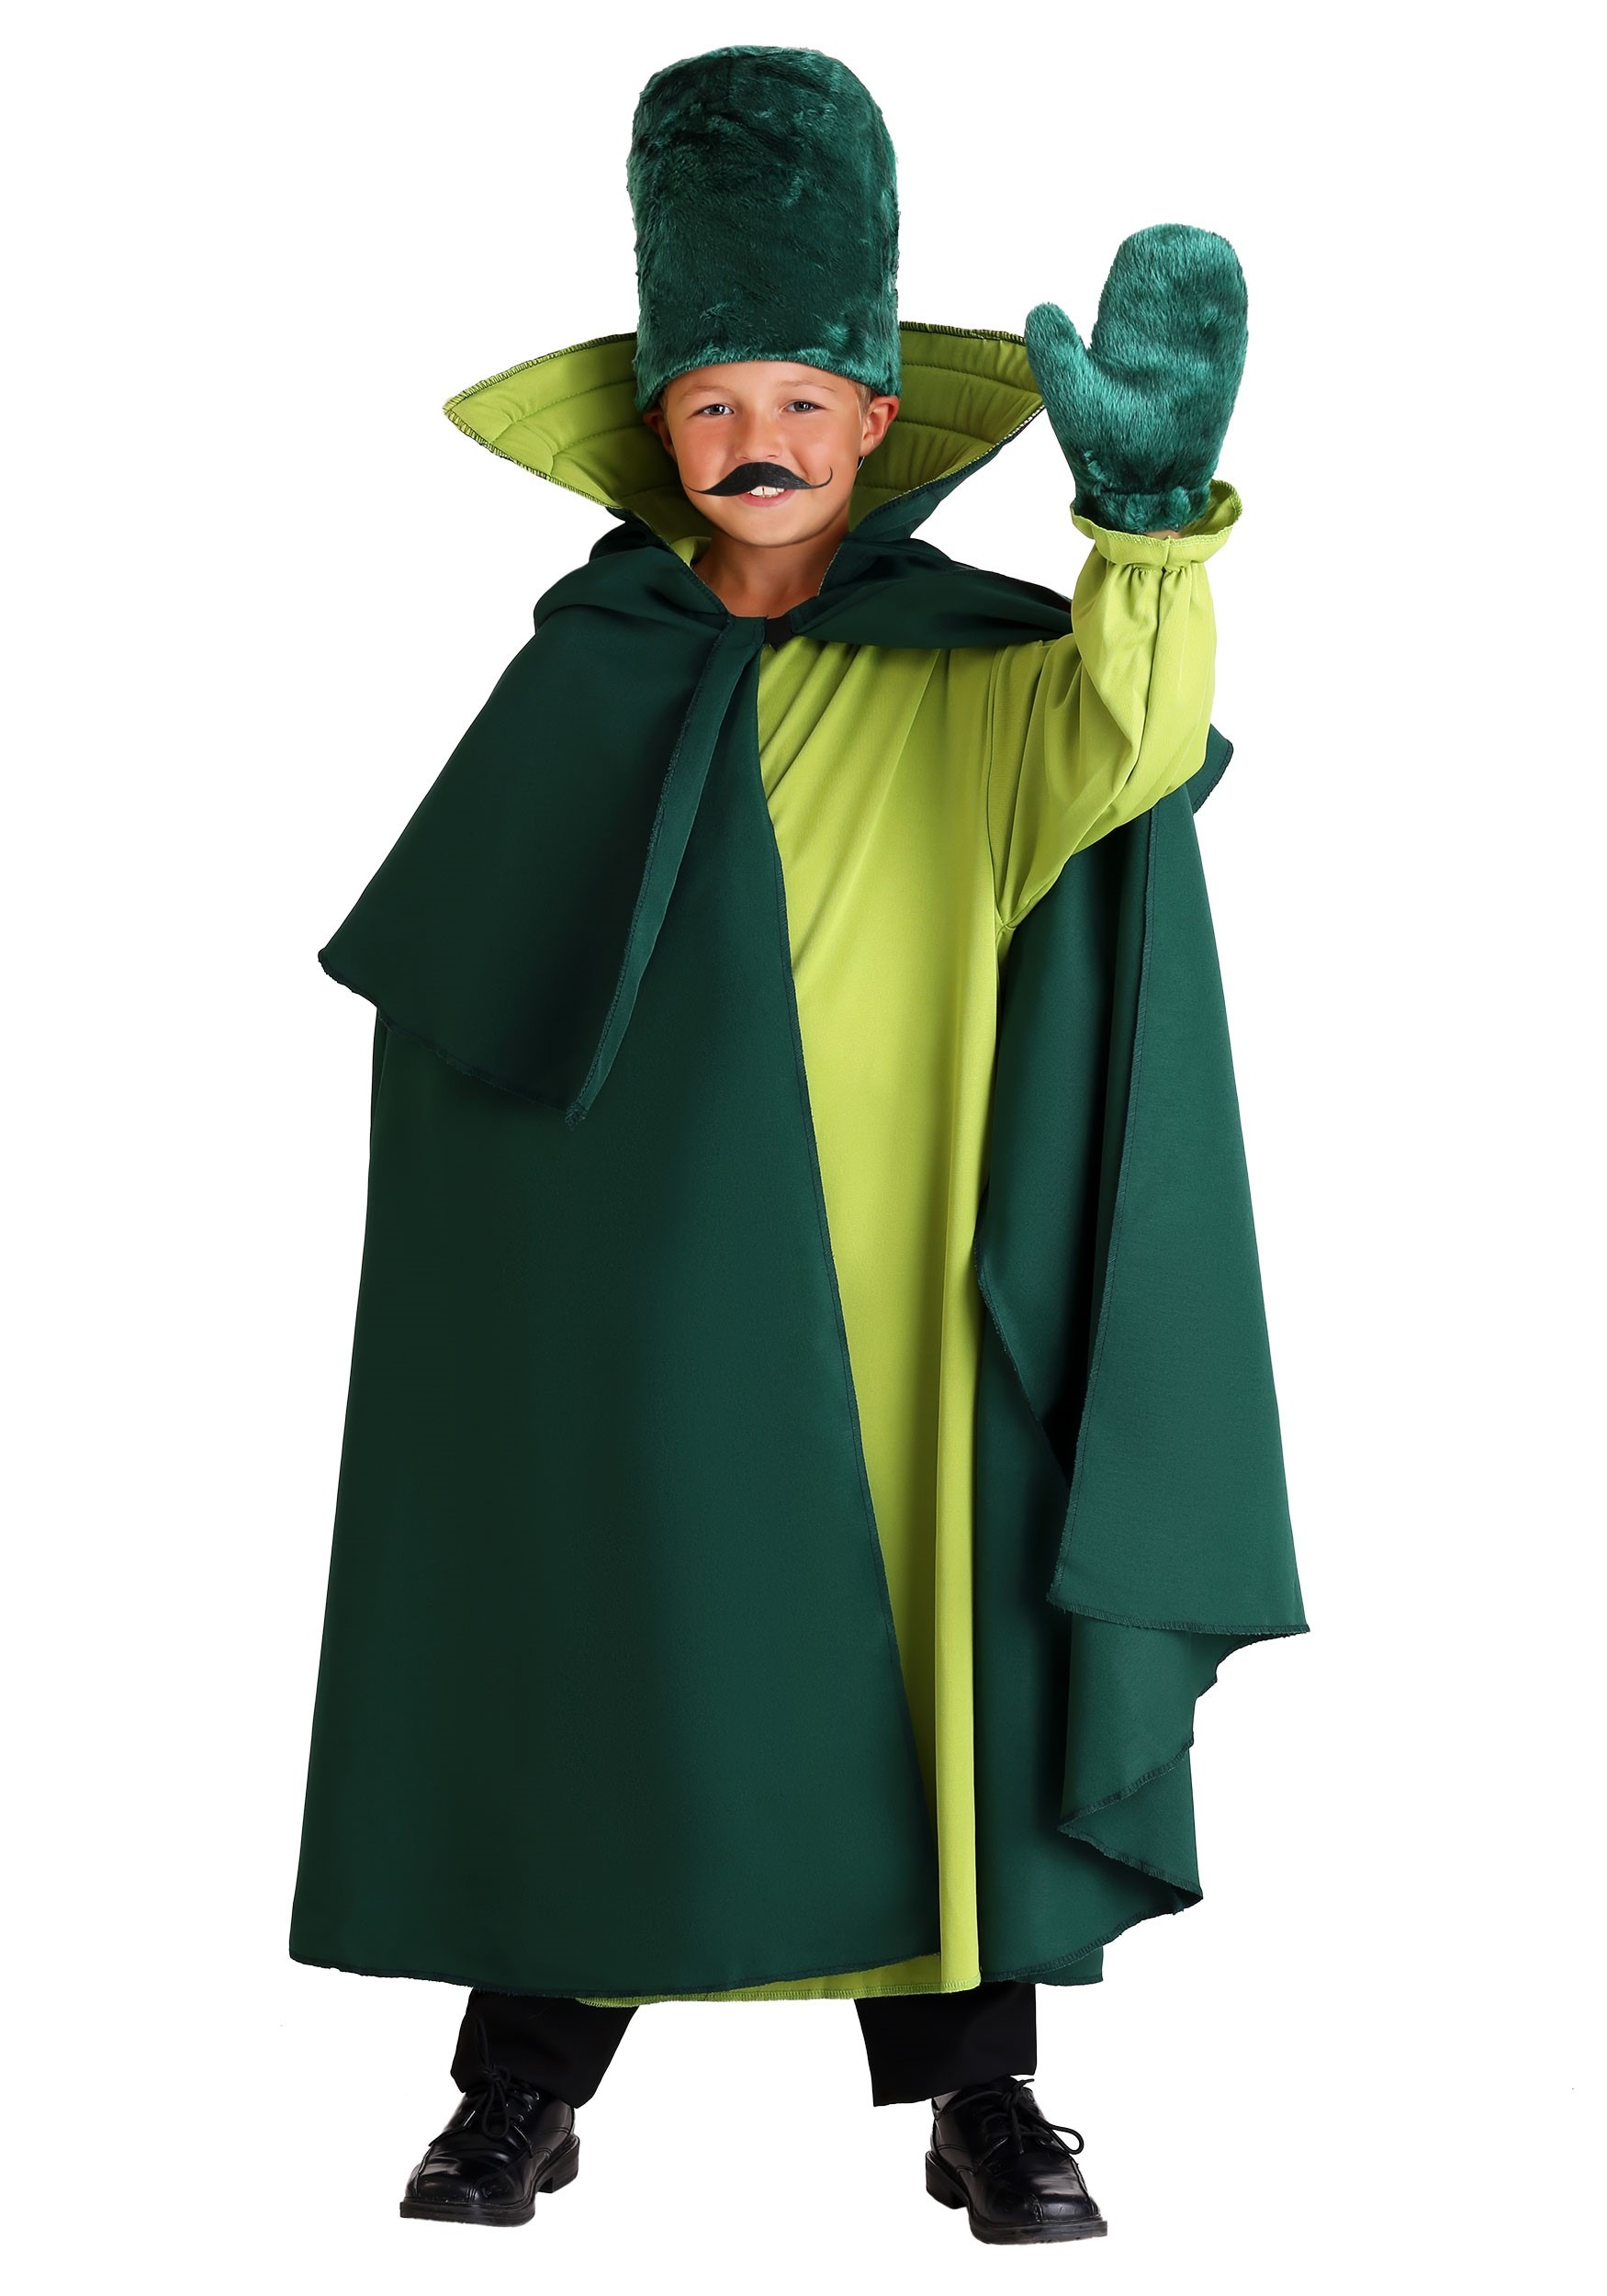 sc 1 st  Wizard of Oz Costumes & Child Green Guard Costume